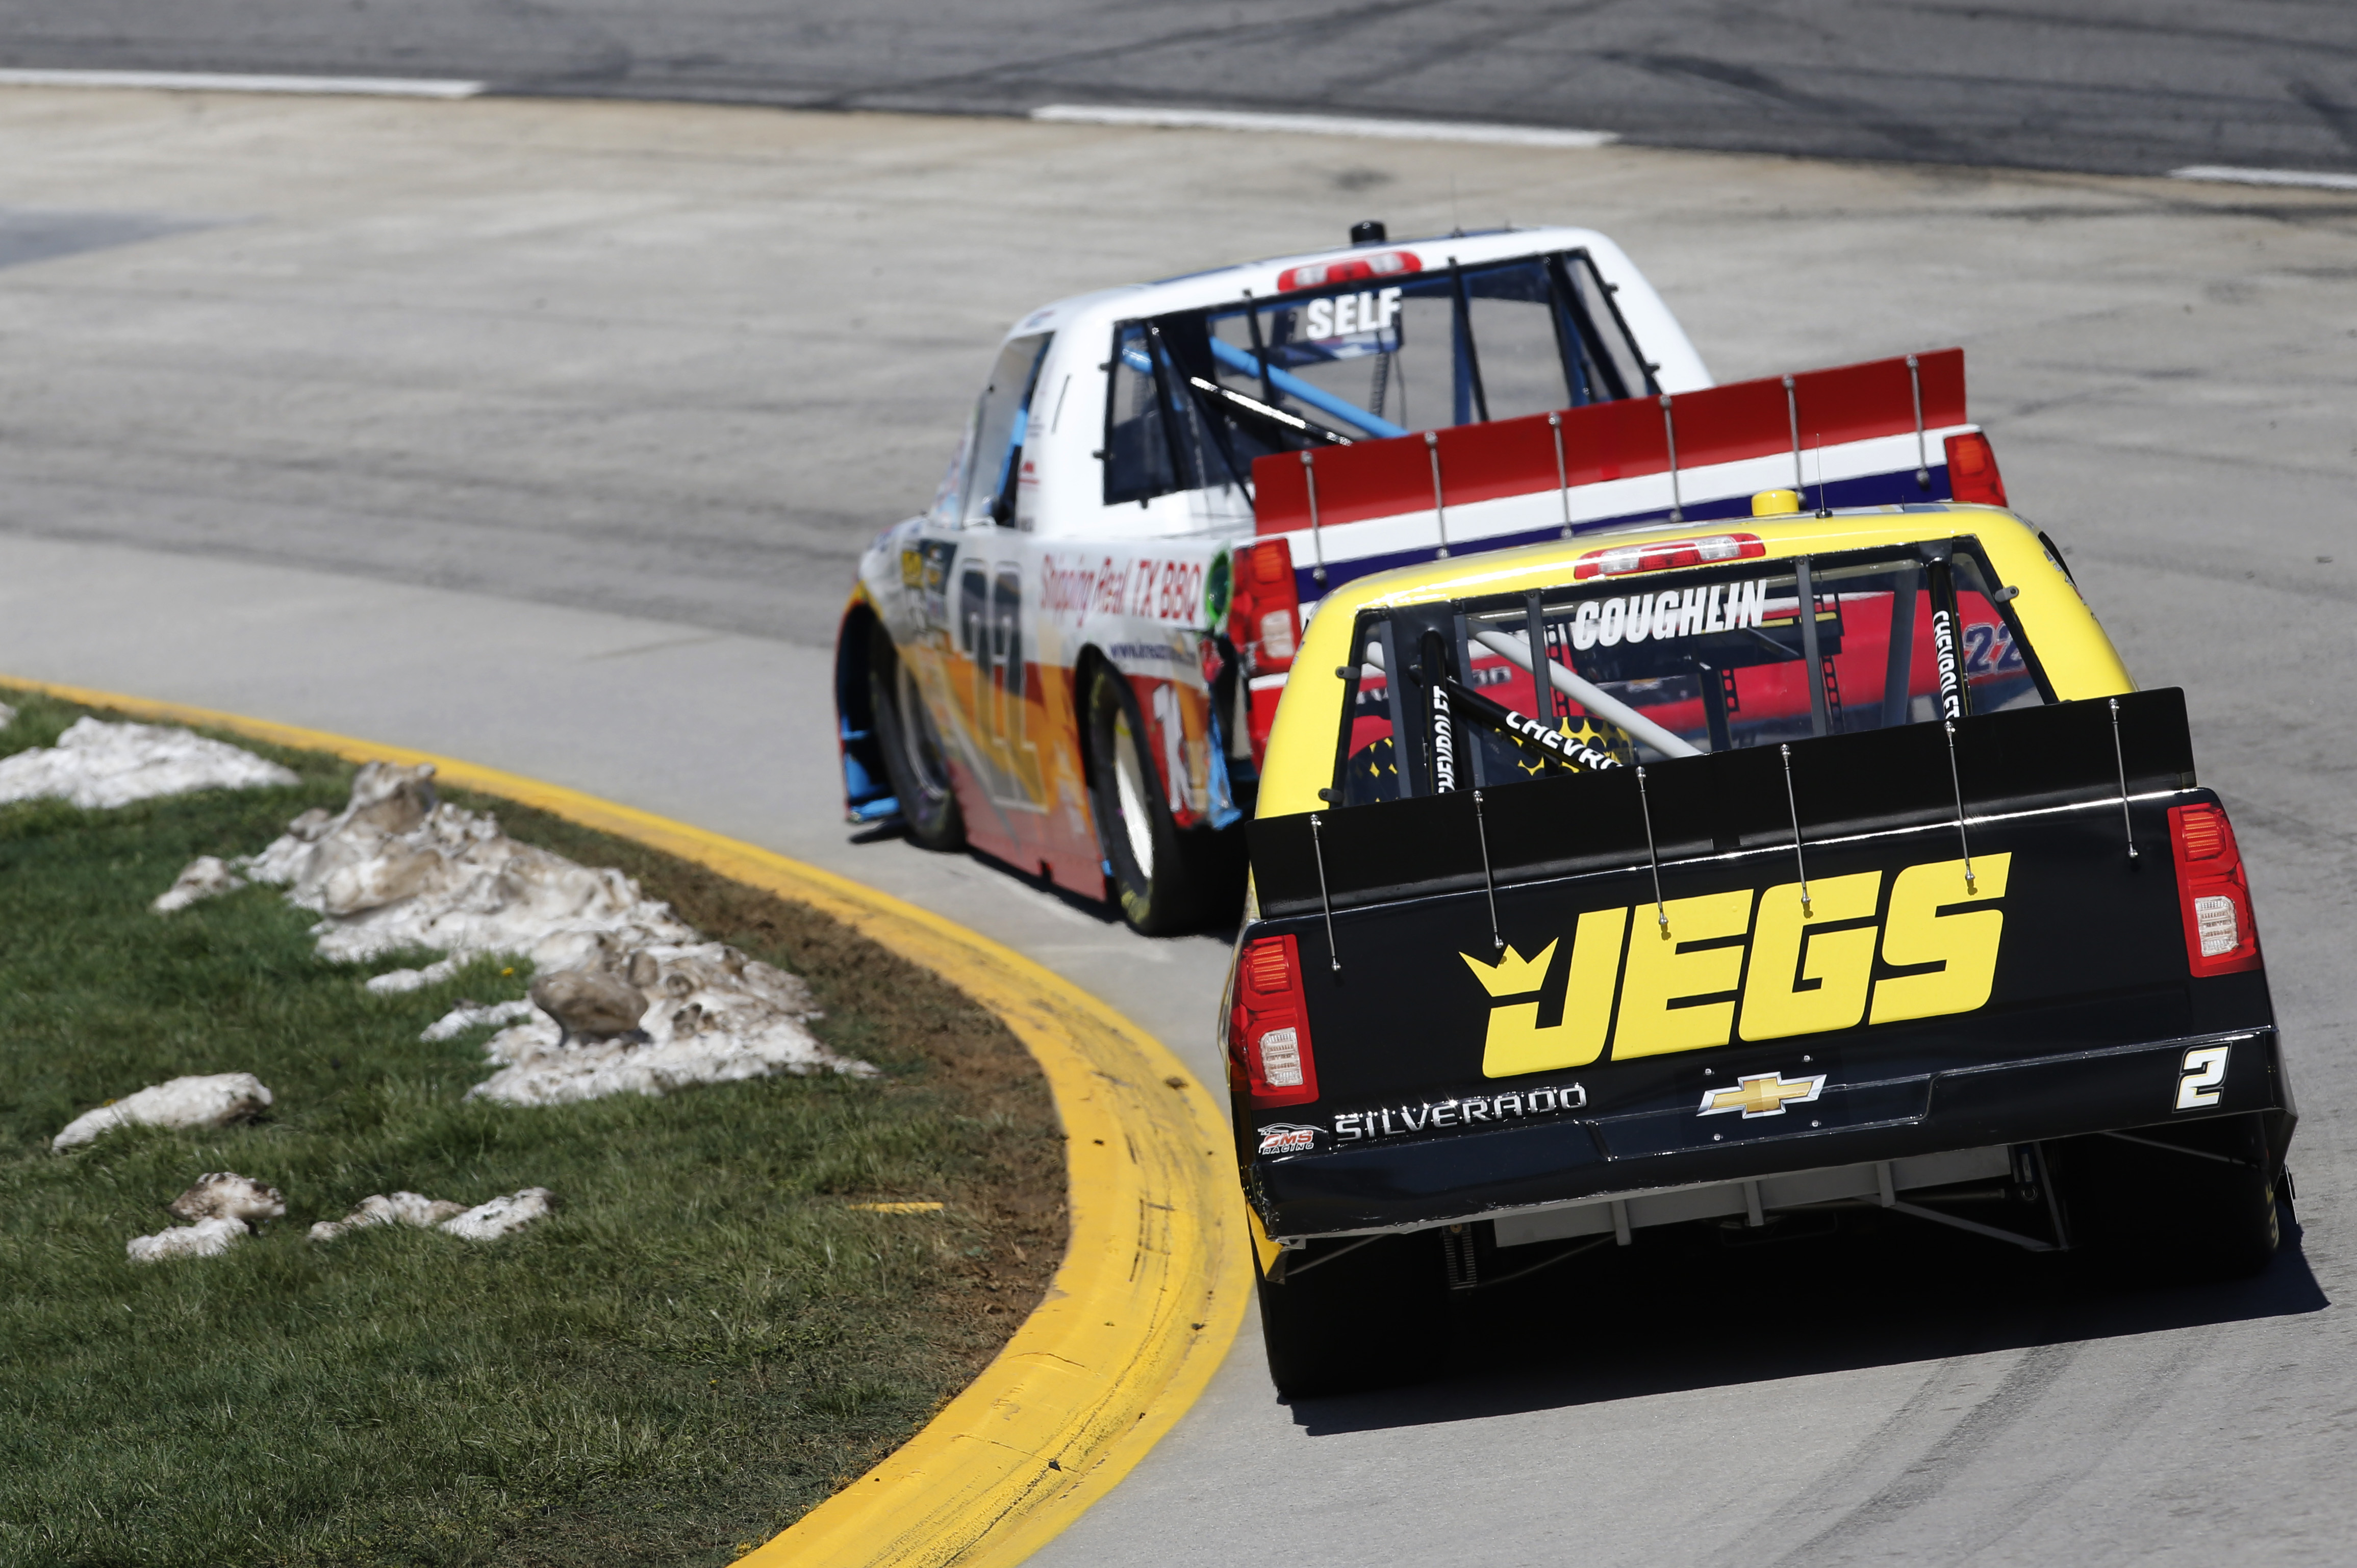 SHORT TRACK, LONG WEEKEND FOR CODY COUGHLIN